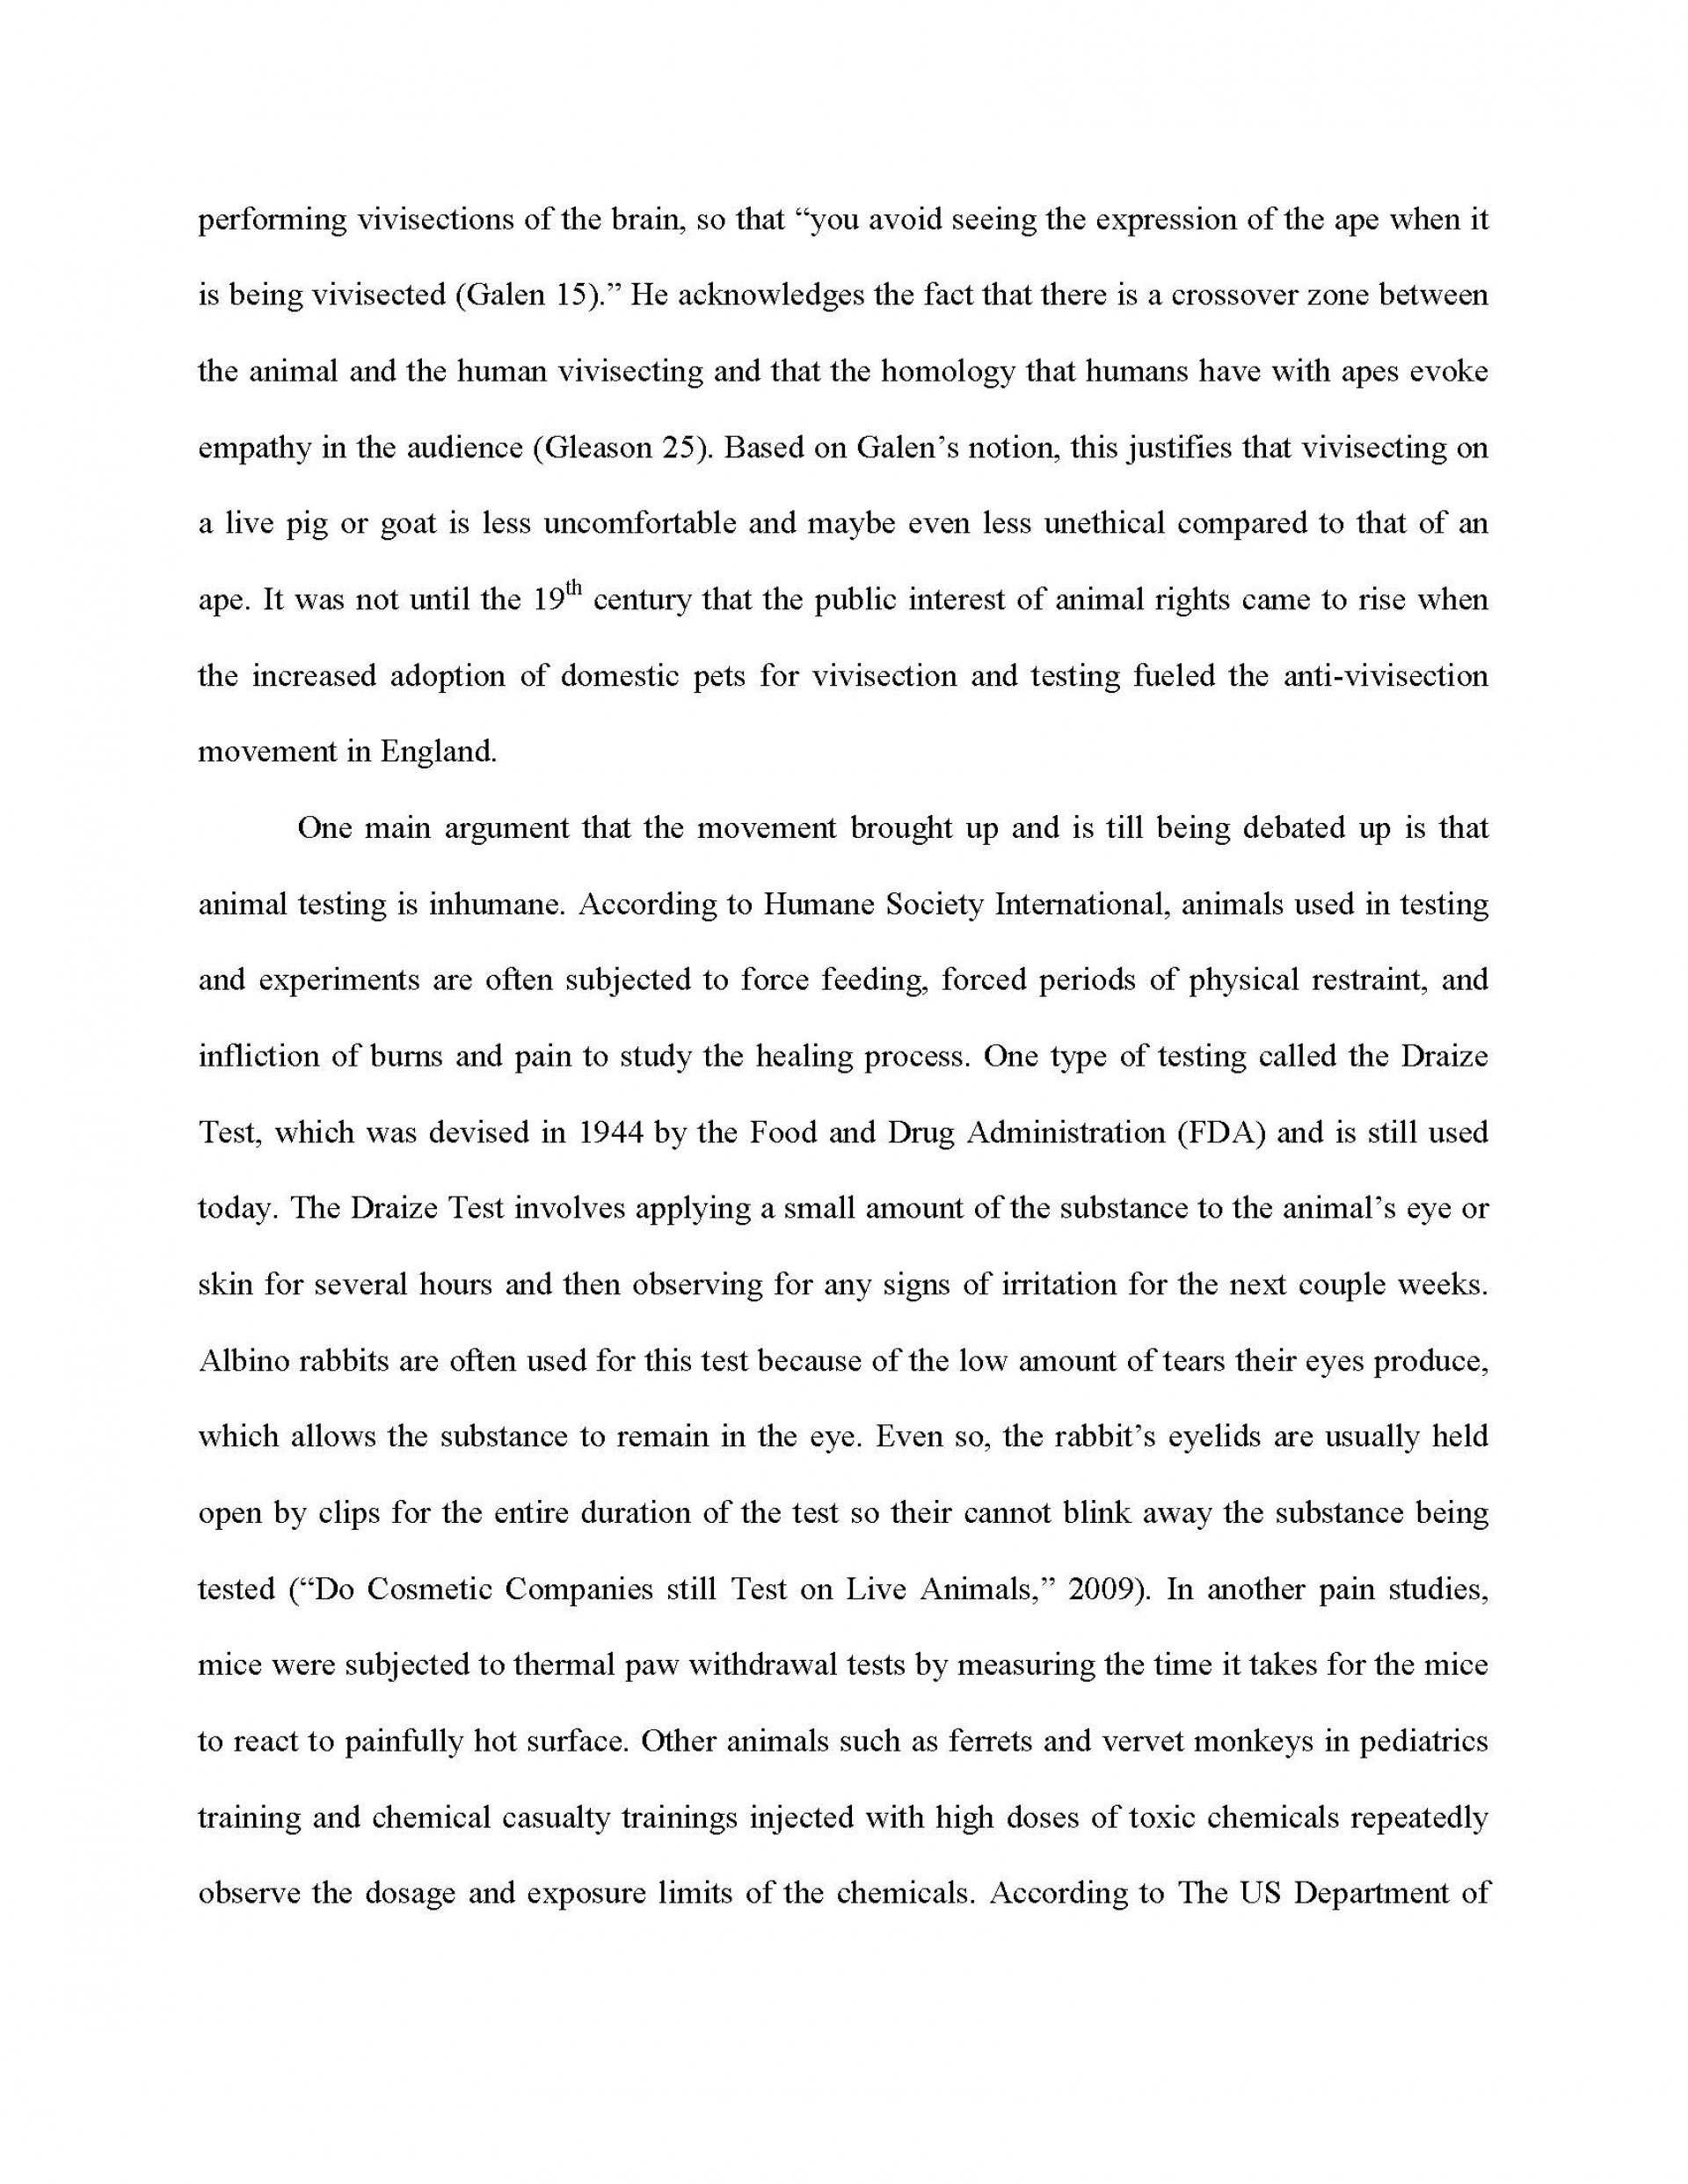 007 Essay Example Against Animal Testing Final Page 2 Imposing Titles Persuasive Conclusion 1920